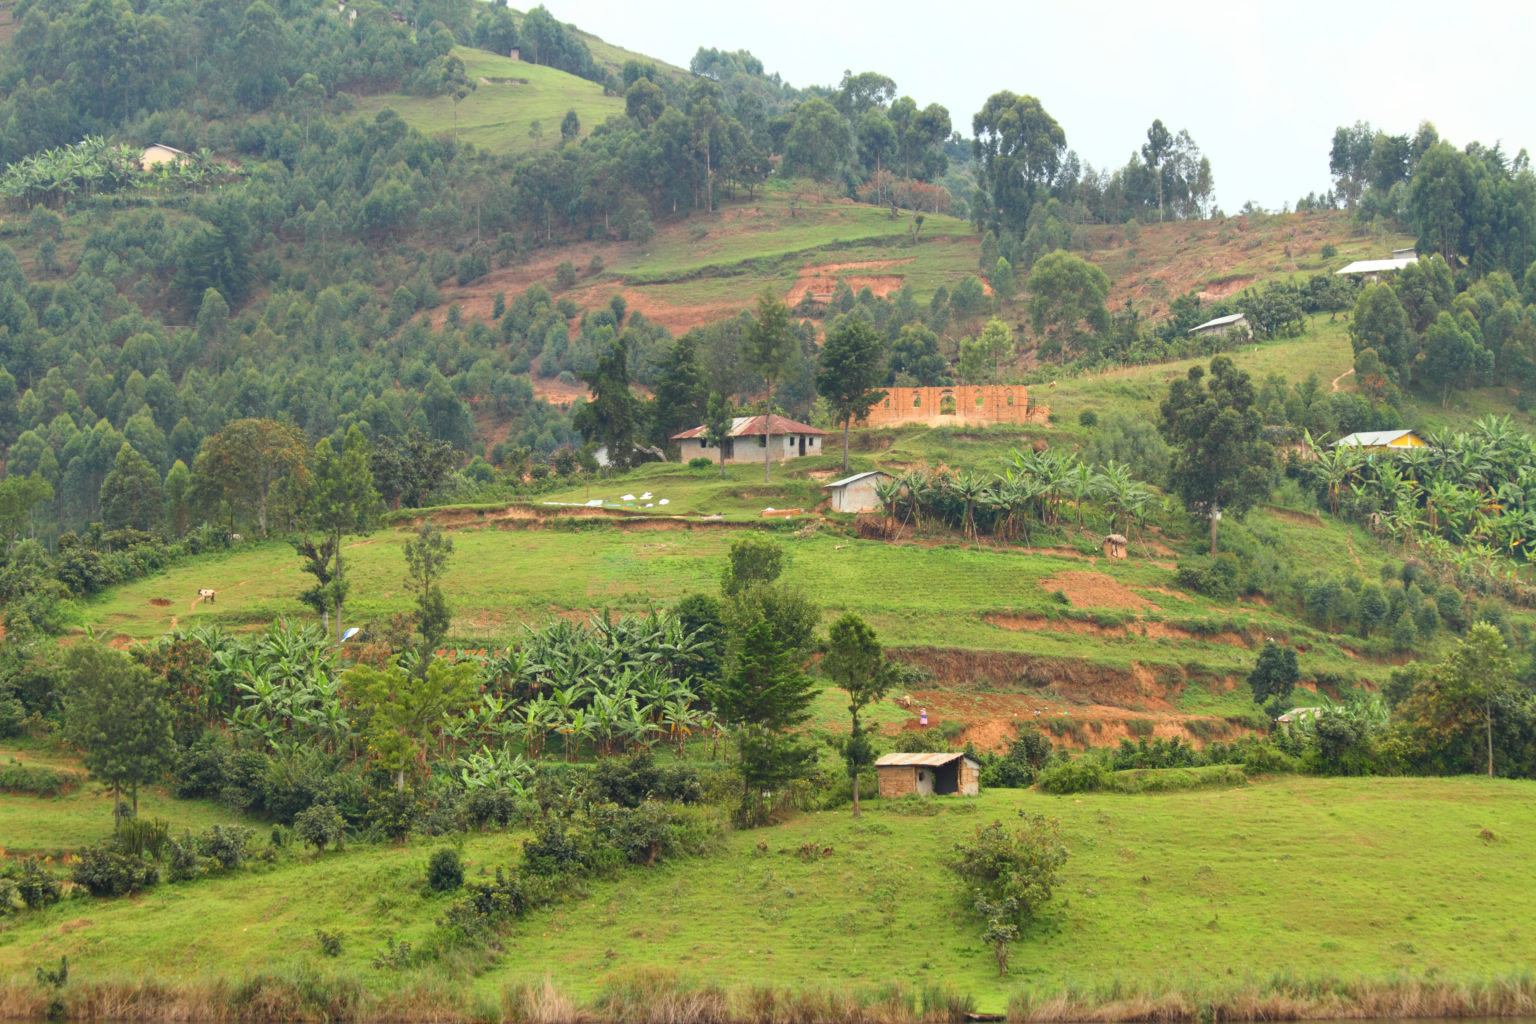 Rural farm communities on Lake Bunyoni Uganda